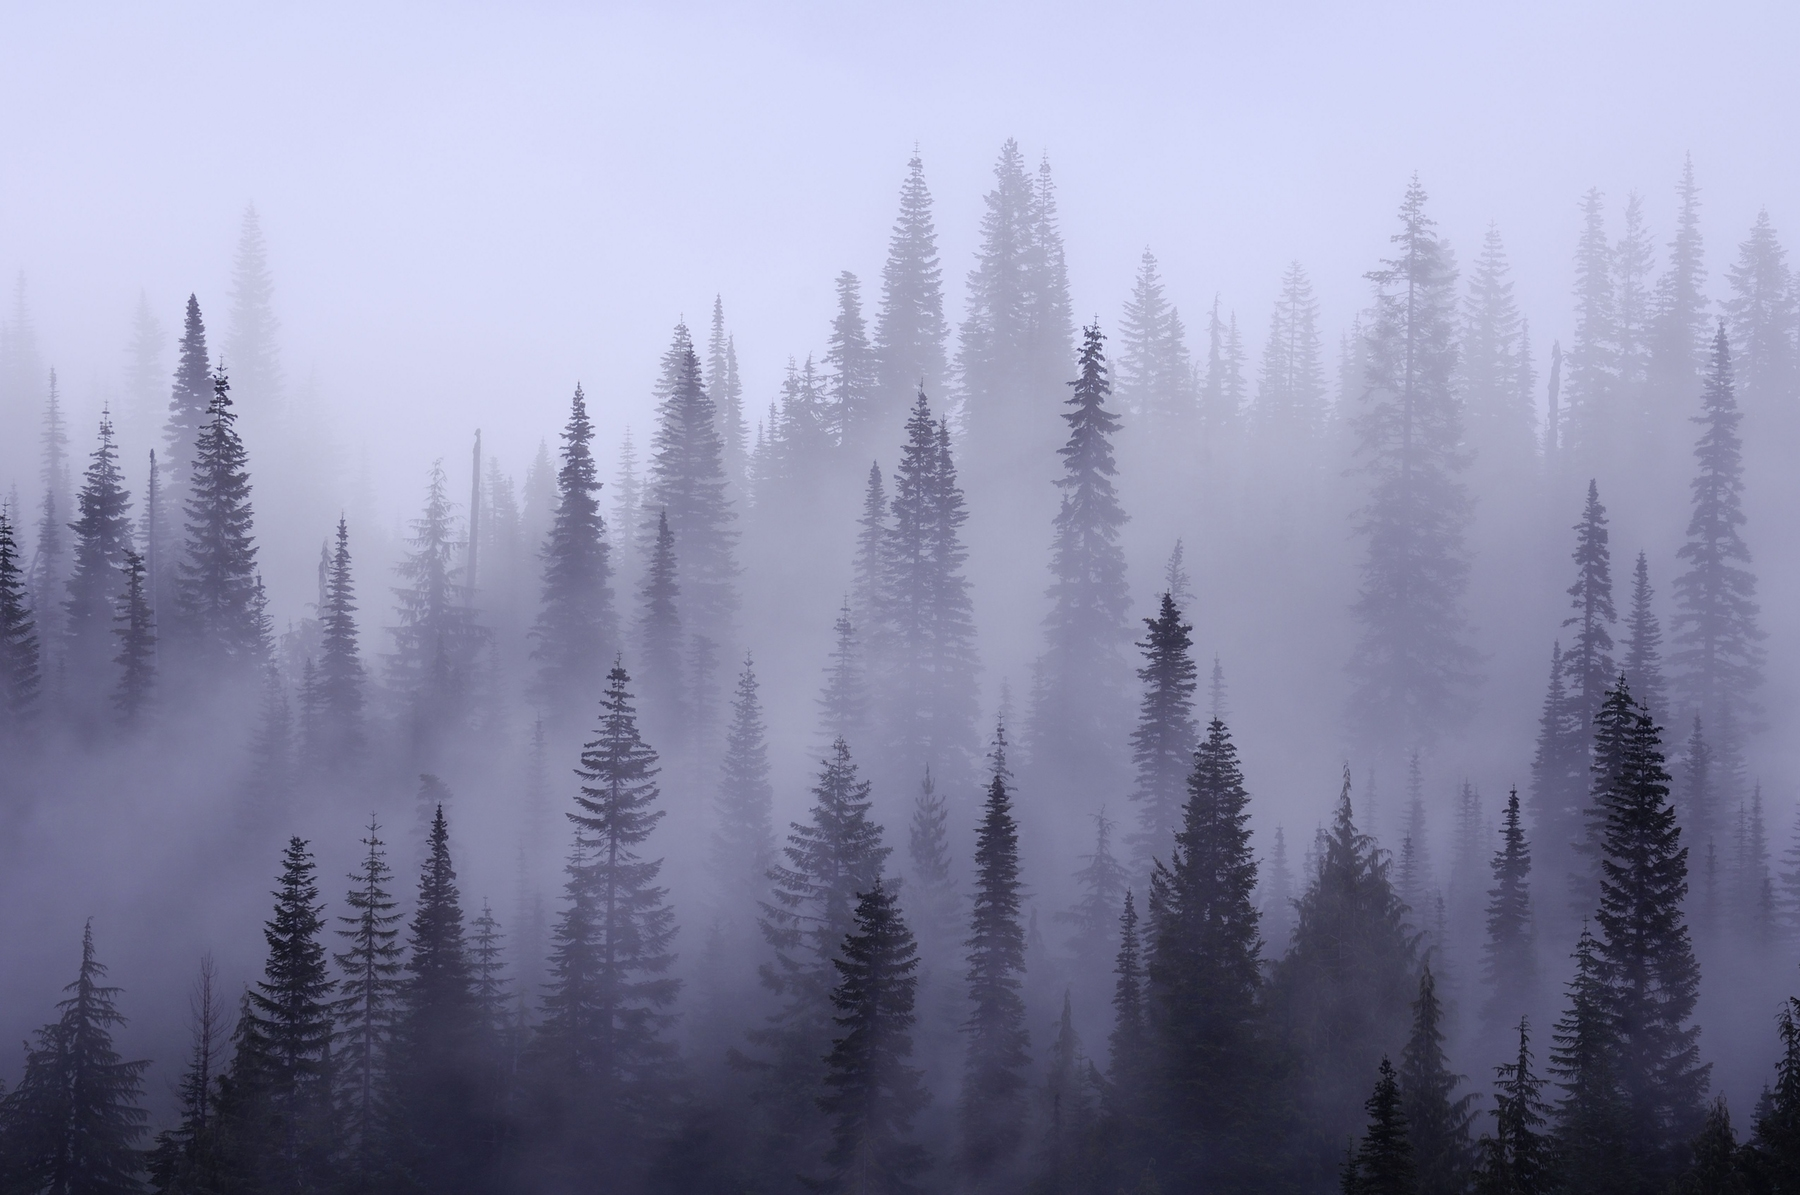 Fall Woodsy Pc Wallpaper Buy Misty Forest Wallpaper Free Us Shipping At Happywall Com